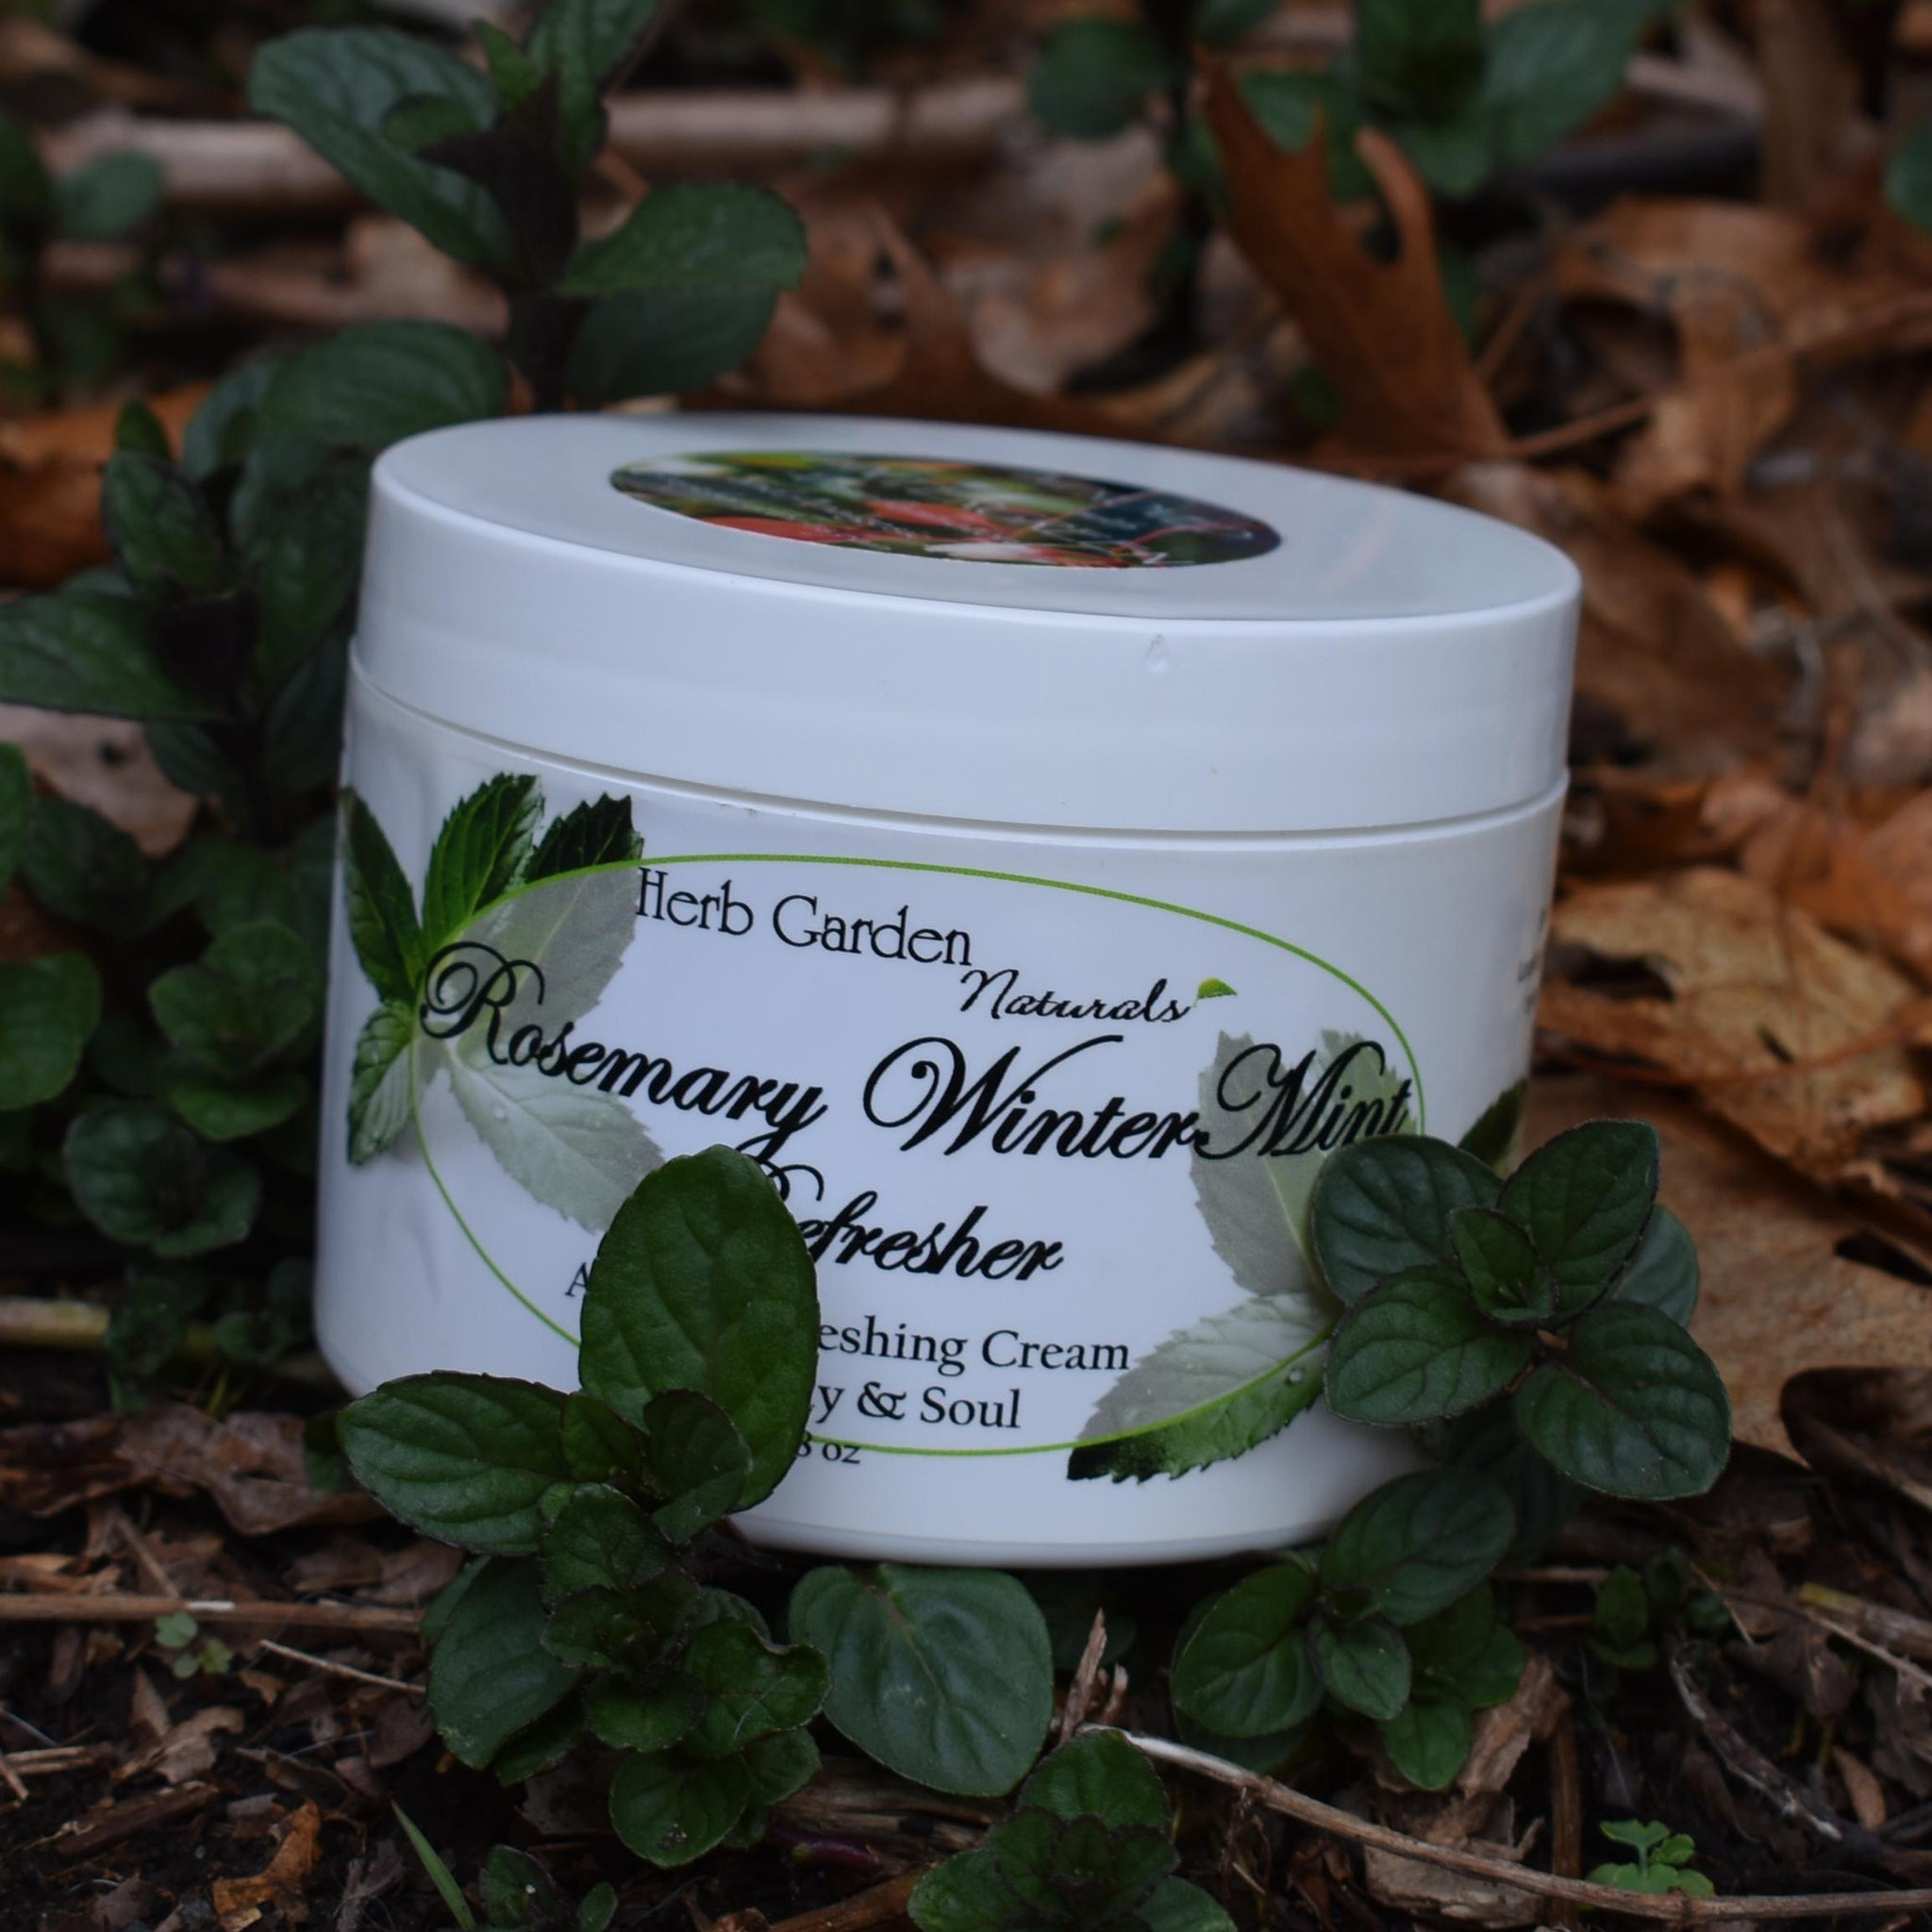 Rosemary WinterMint Refresher Organic Body Cream